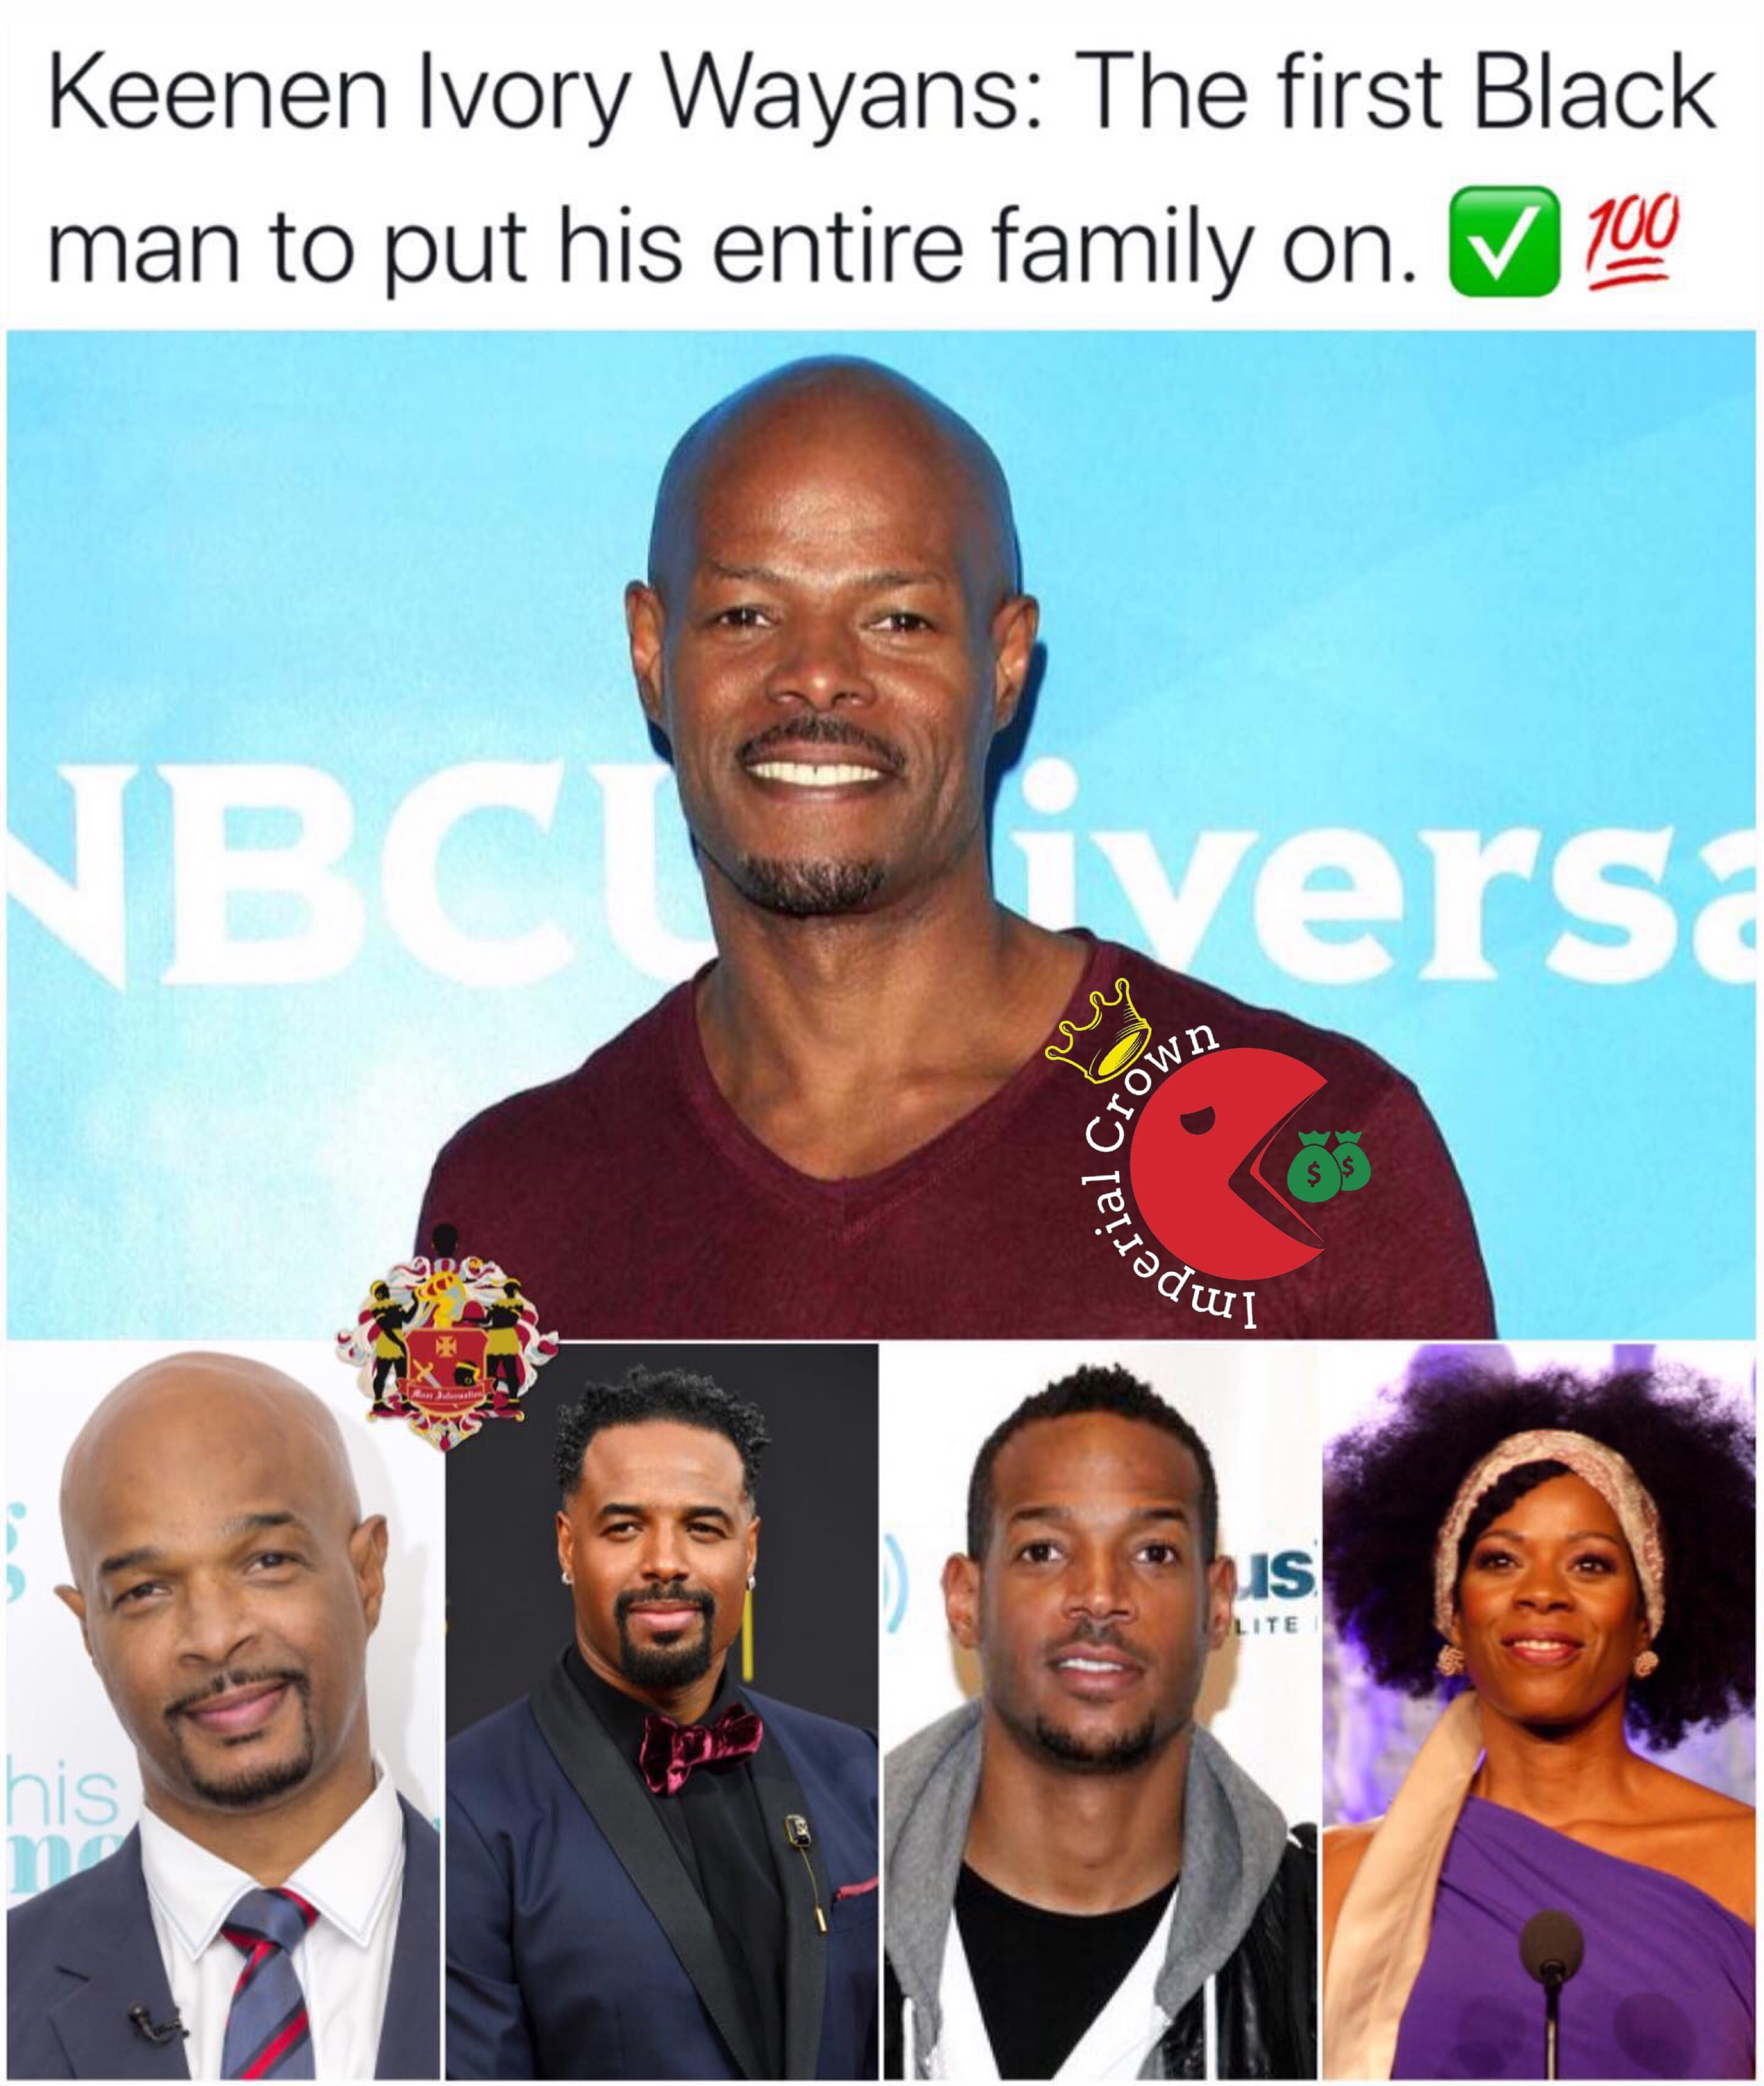 Keeenen ivory wayans the first black man to put his entire family on